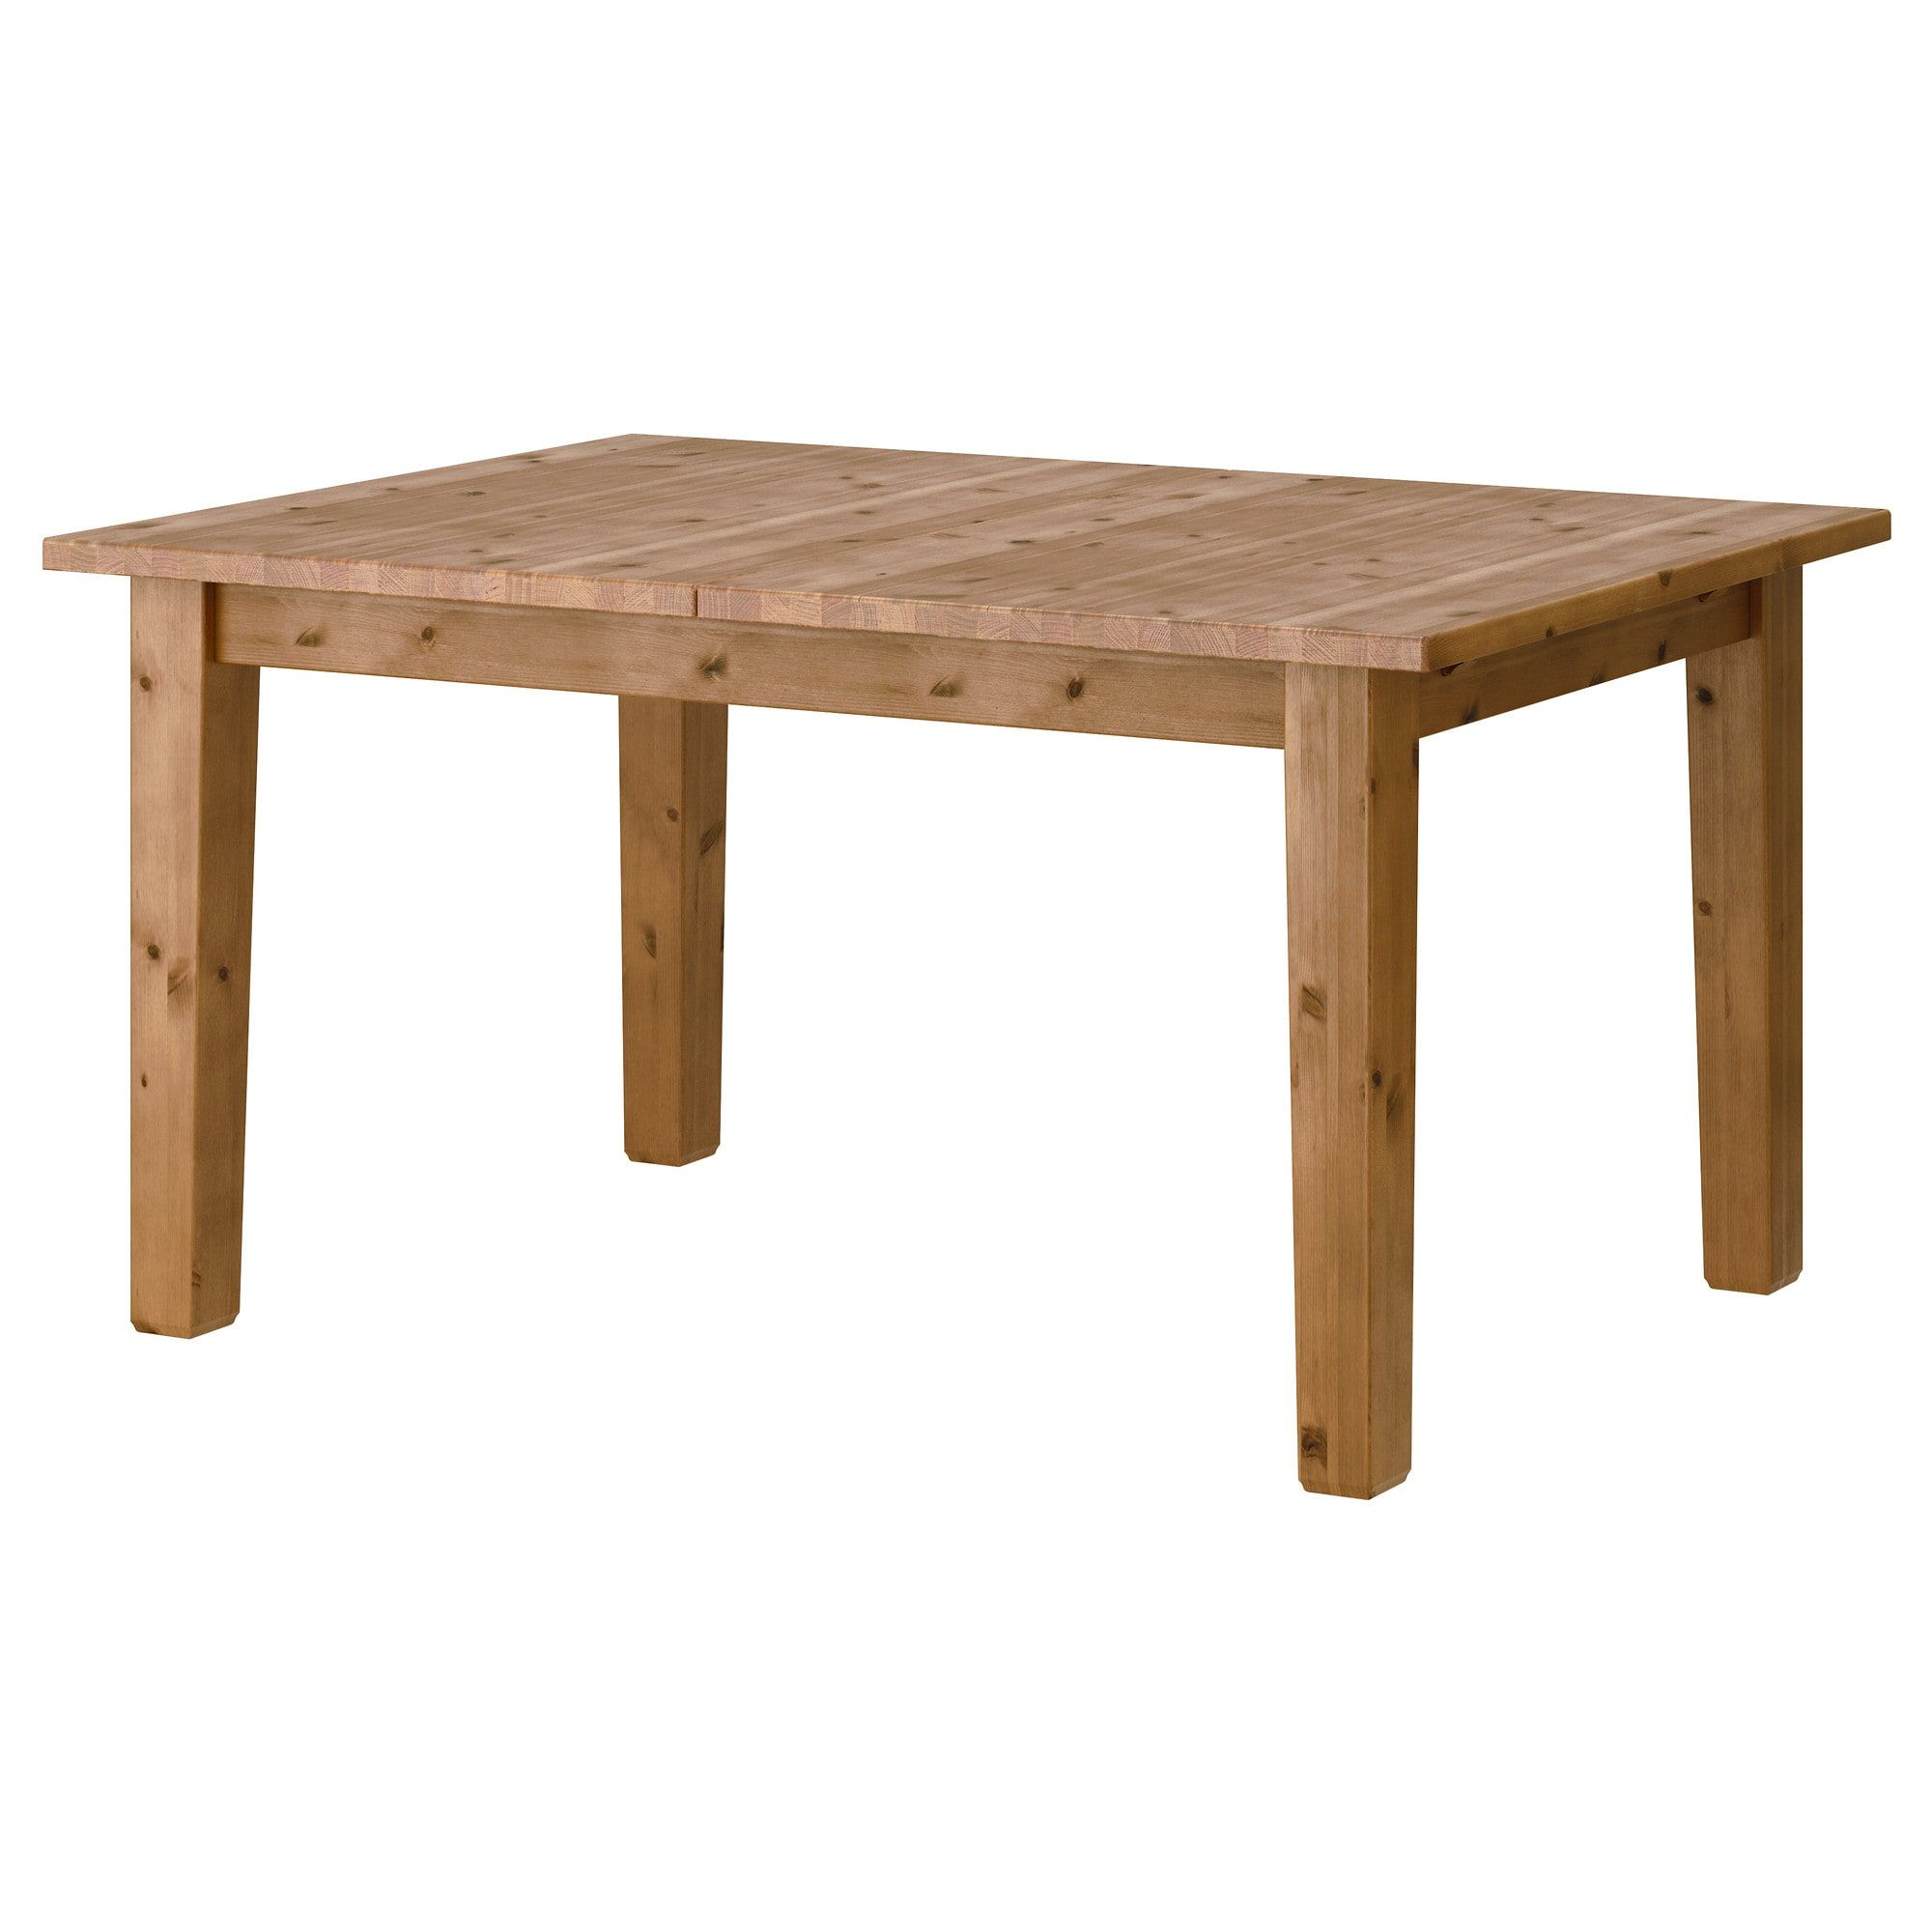 STORNÄS Extendable table, antique stain in 2018 | New Home ...